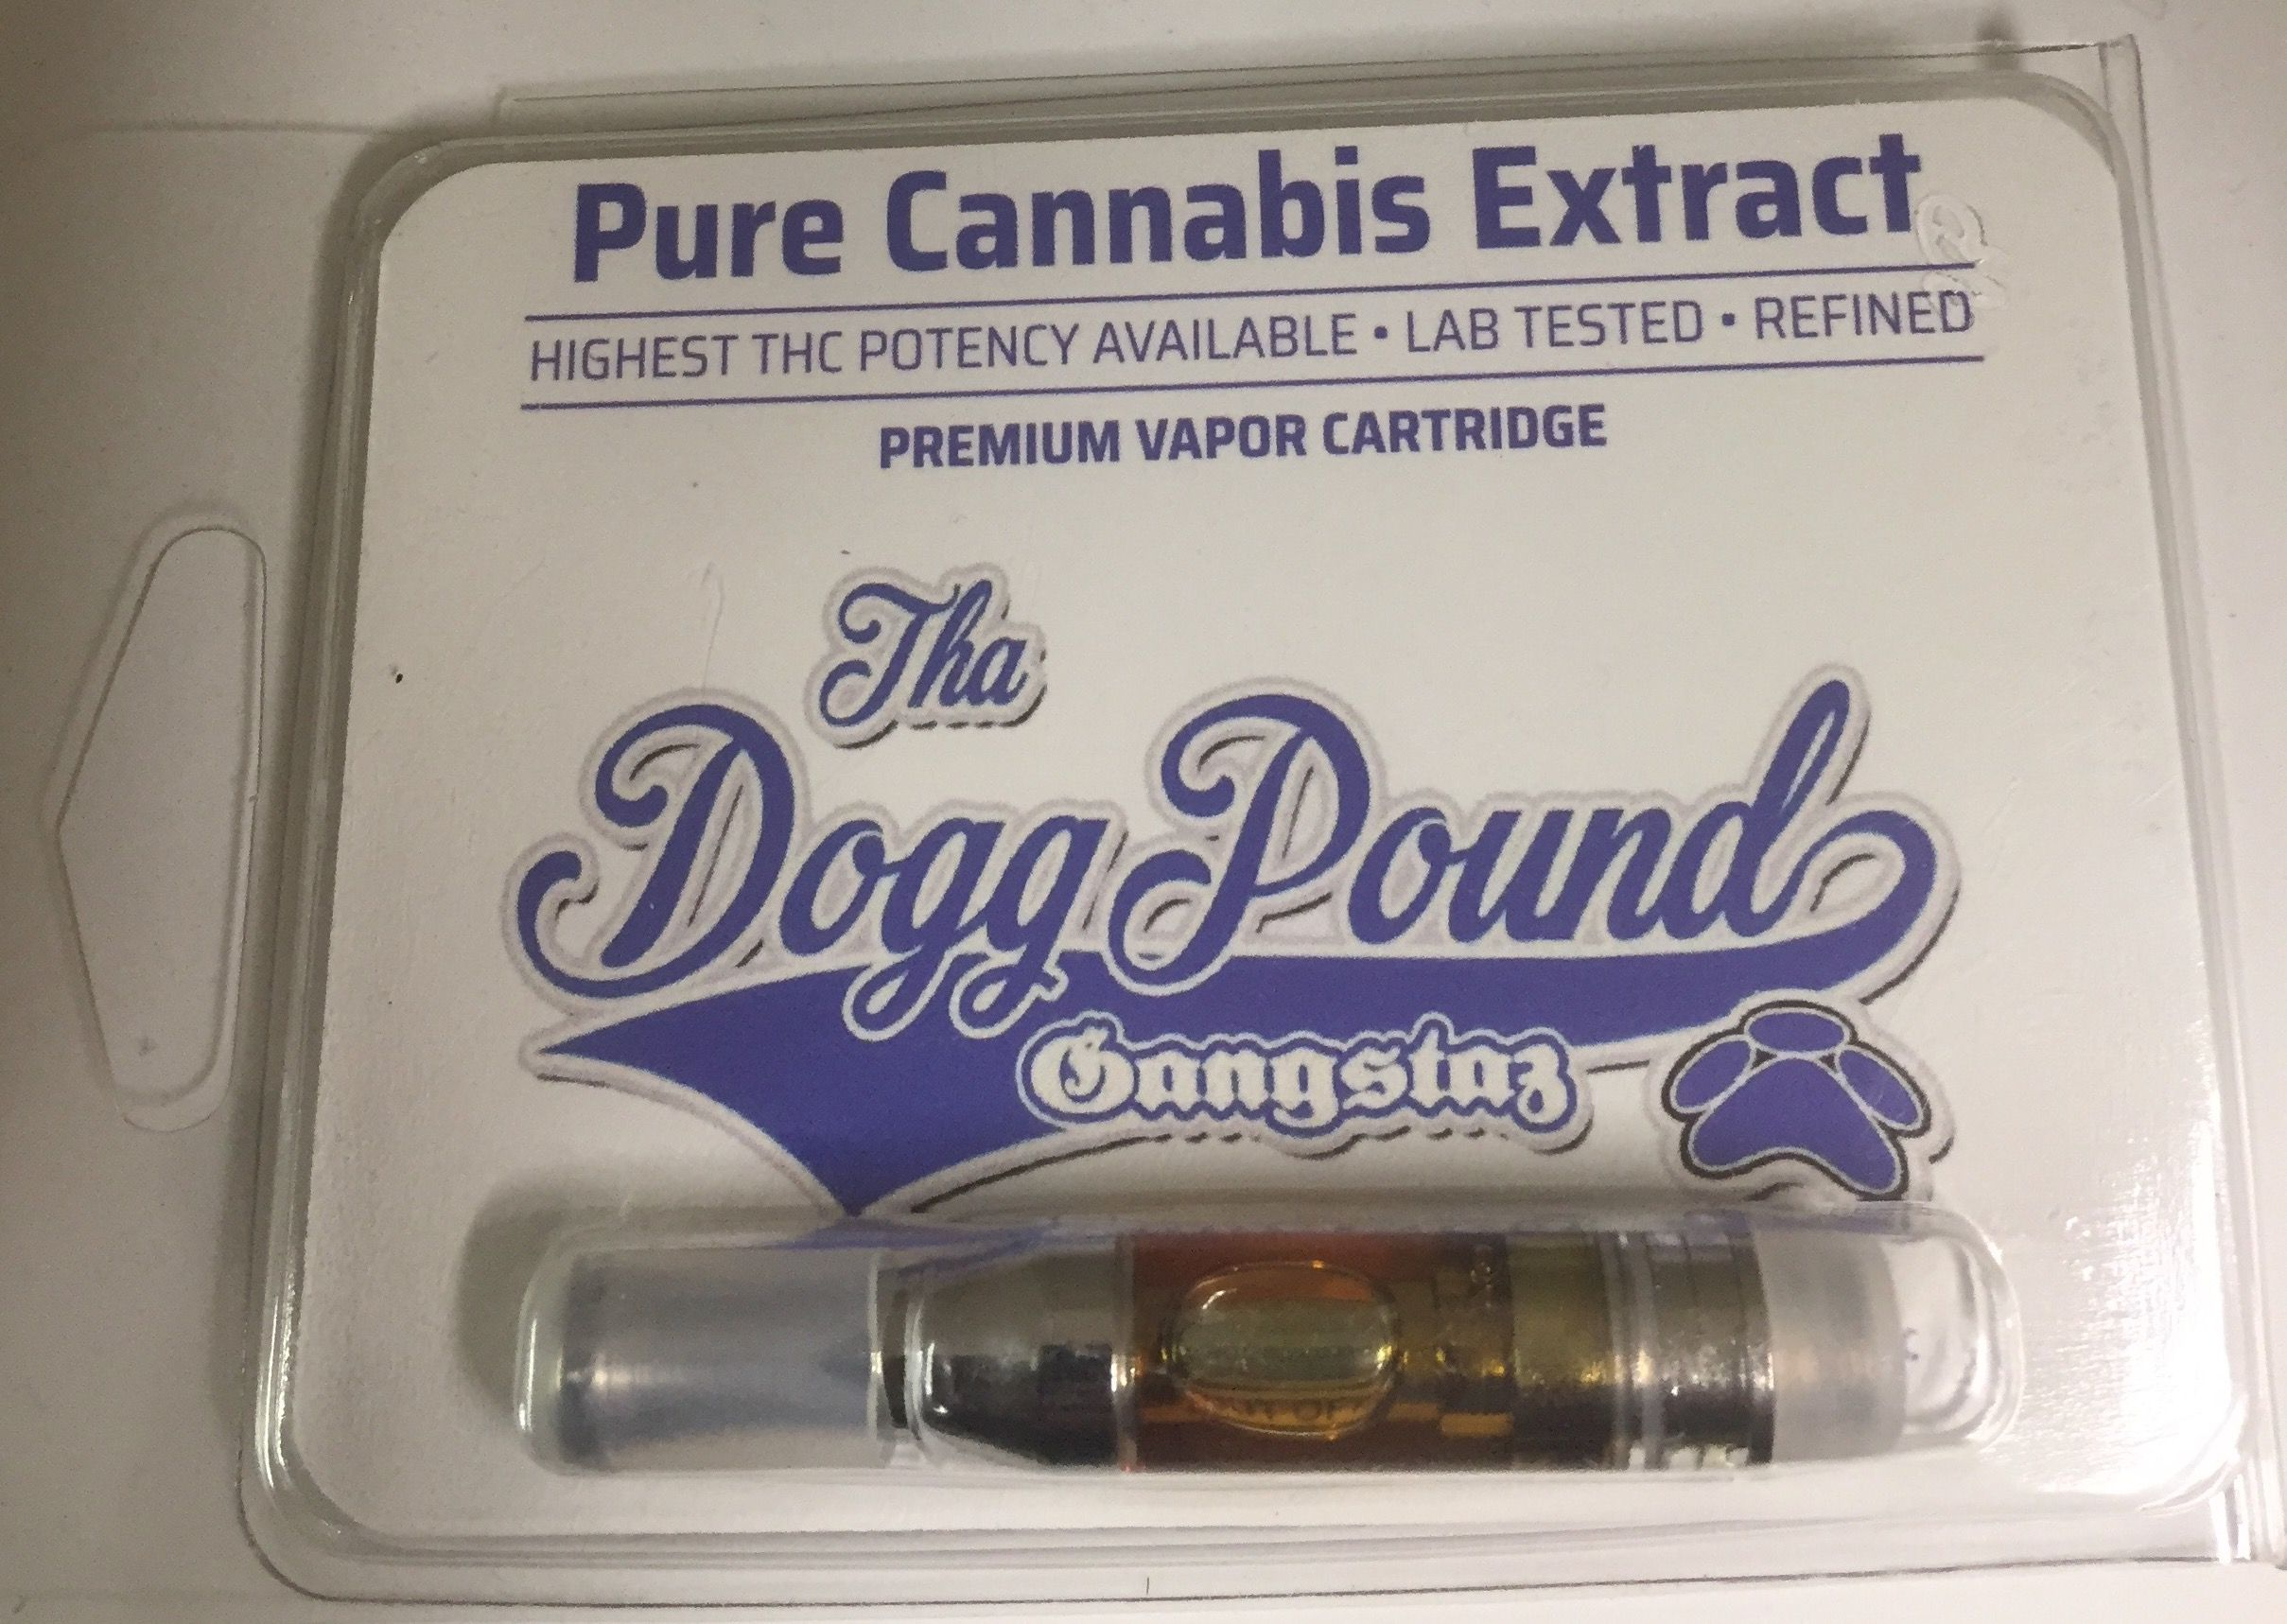 Tha Dogg Pound Gangstas - Ripe Pear Cartridge